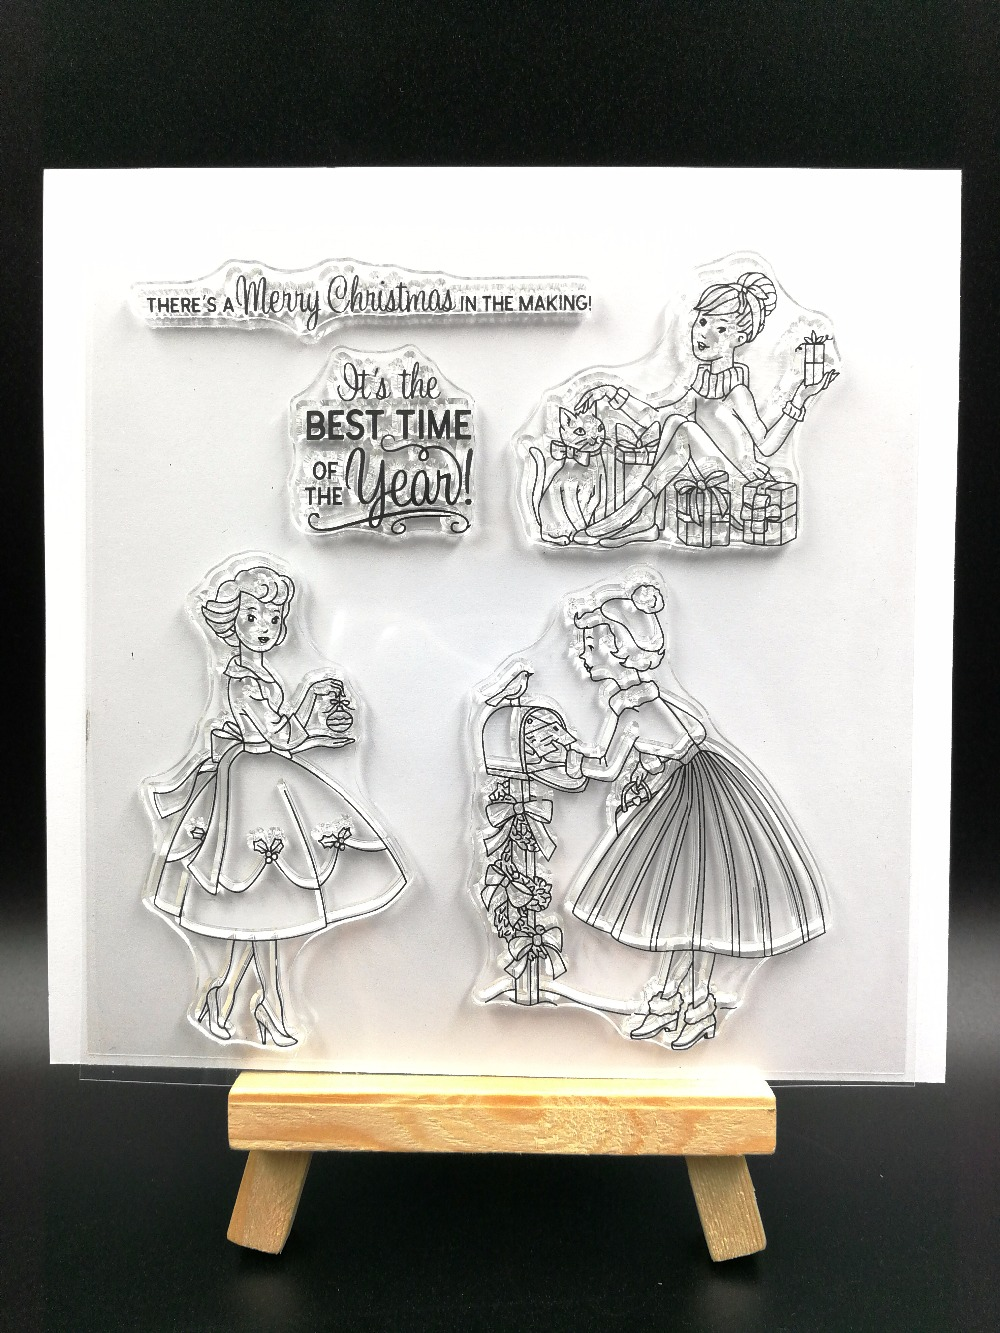 New Year greeting Transparent Clear Silicone Stamp/Seal for DIY scrapbooking/photo album Decorative clear stamp sheets H090